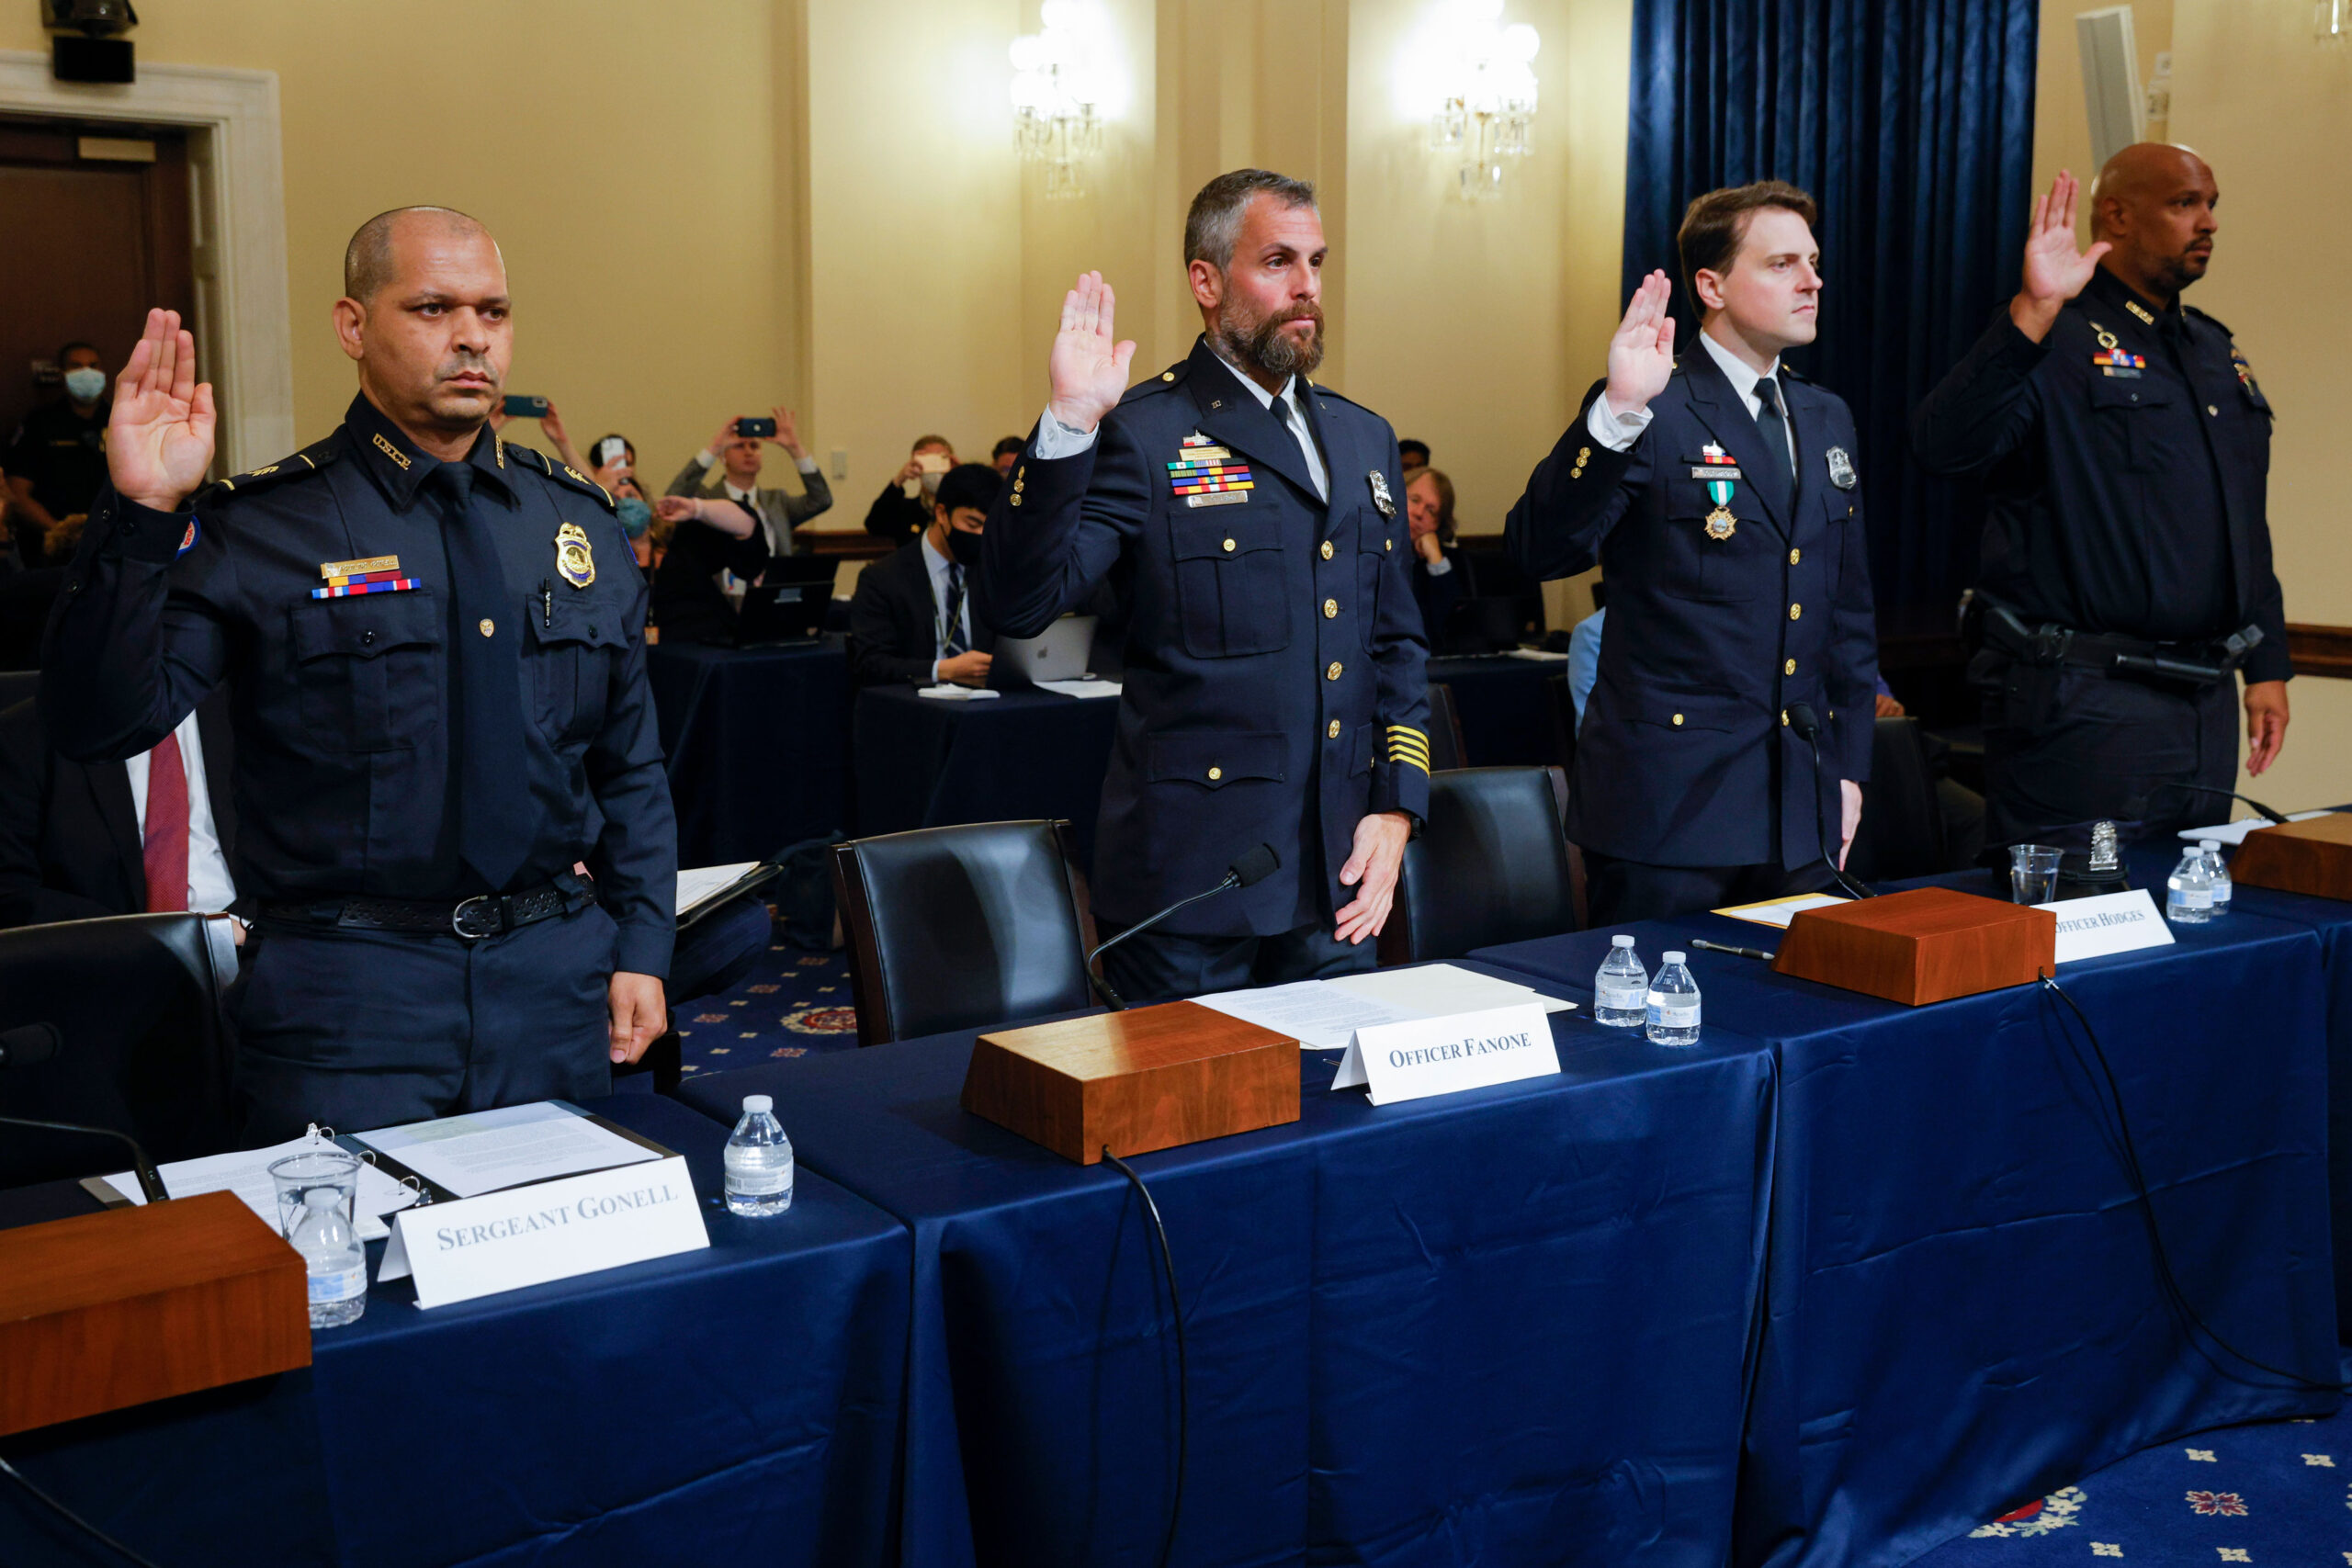 Harry Dunn joined other Capitol Police officers urging the Jan. 6 committee to investigate whether 'anyone in power' aided events leading to the attack 1